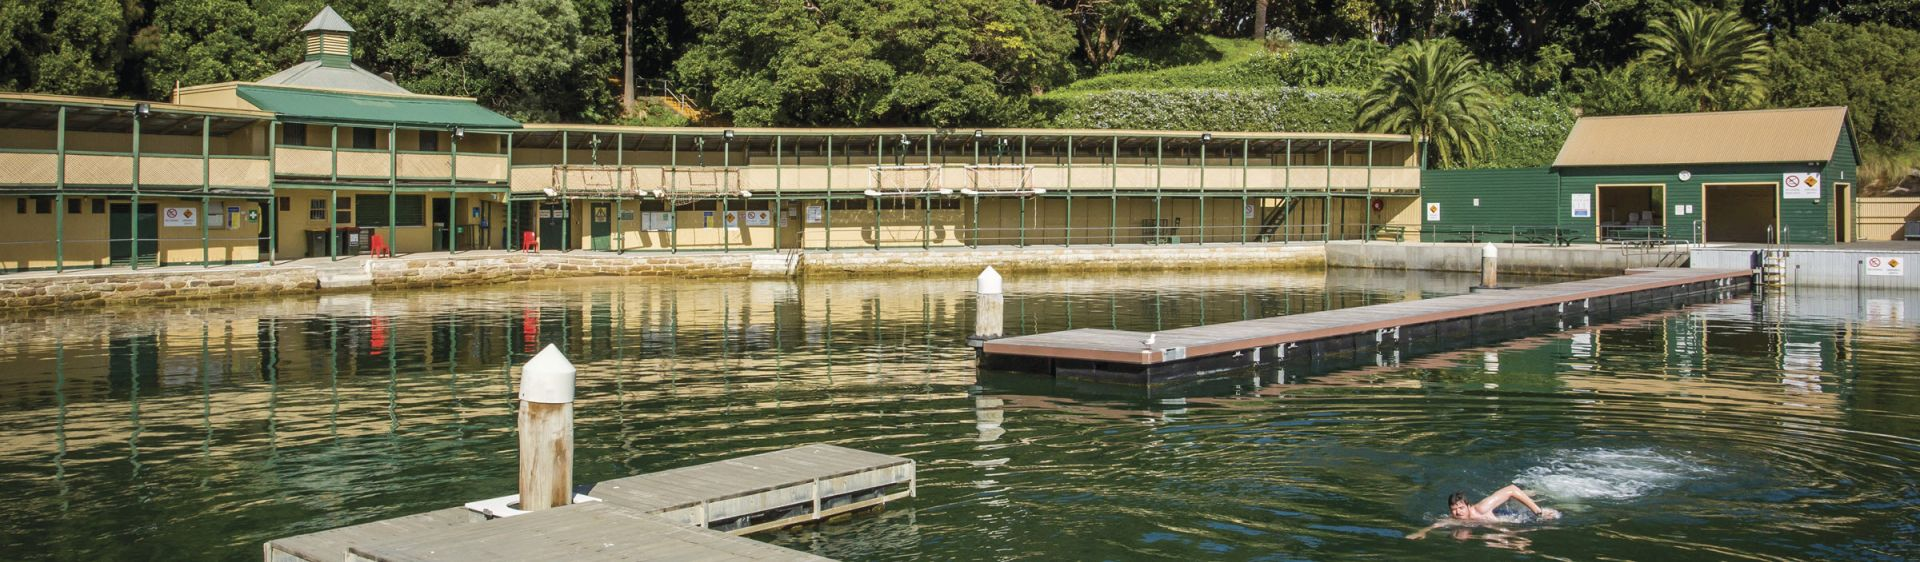 Dawn Fraser Baths, Balmain